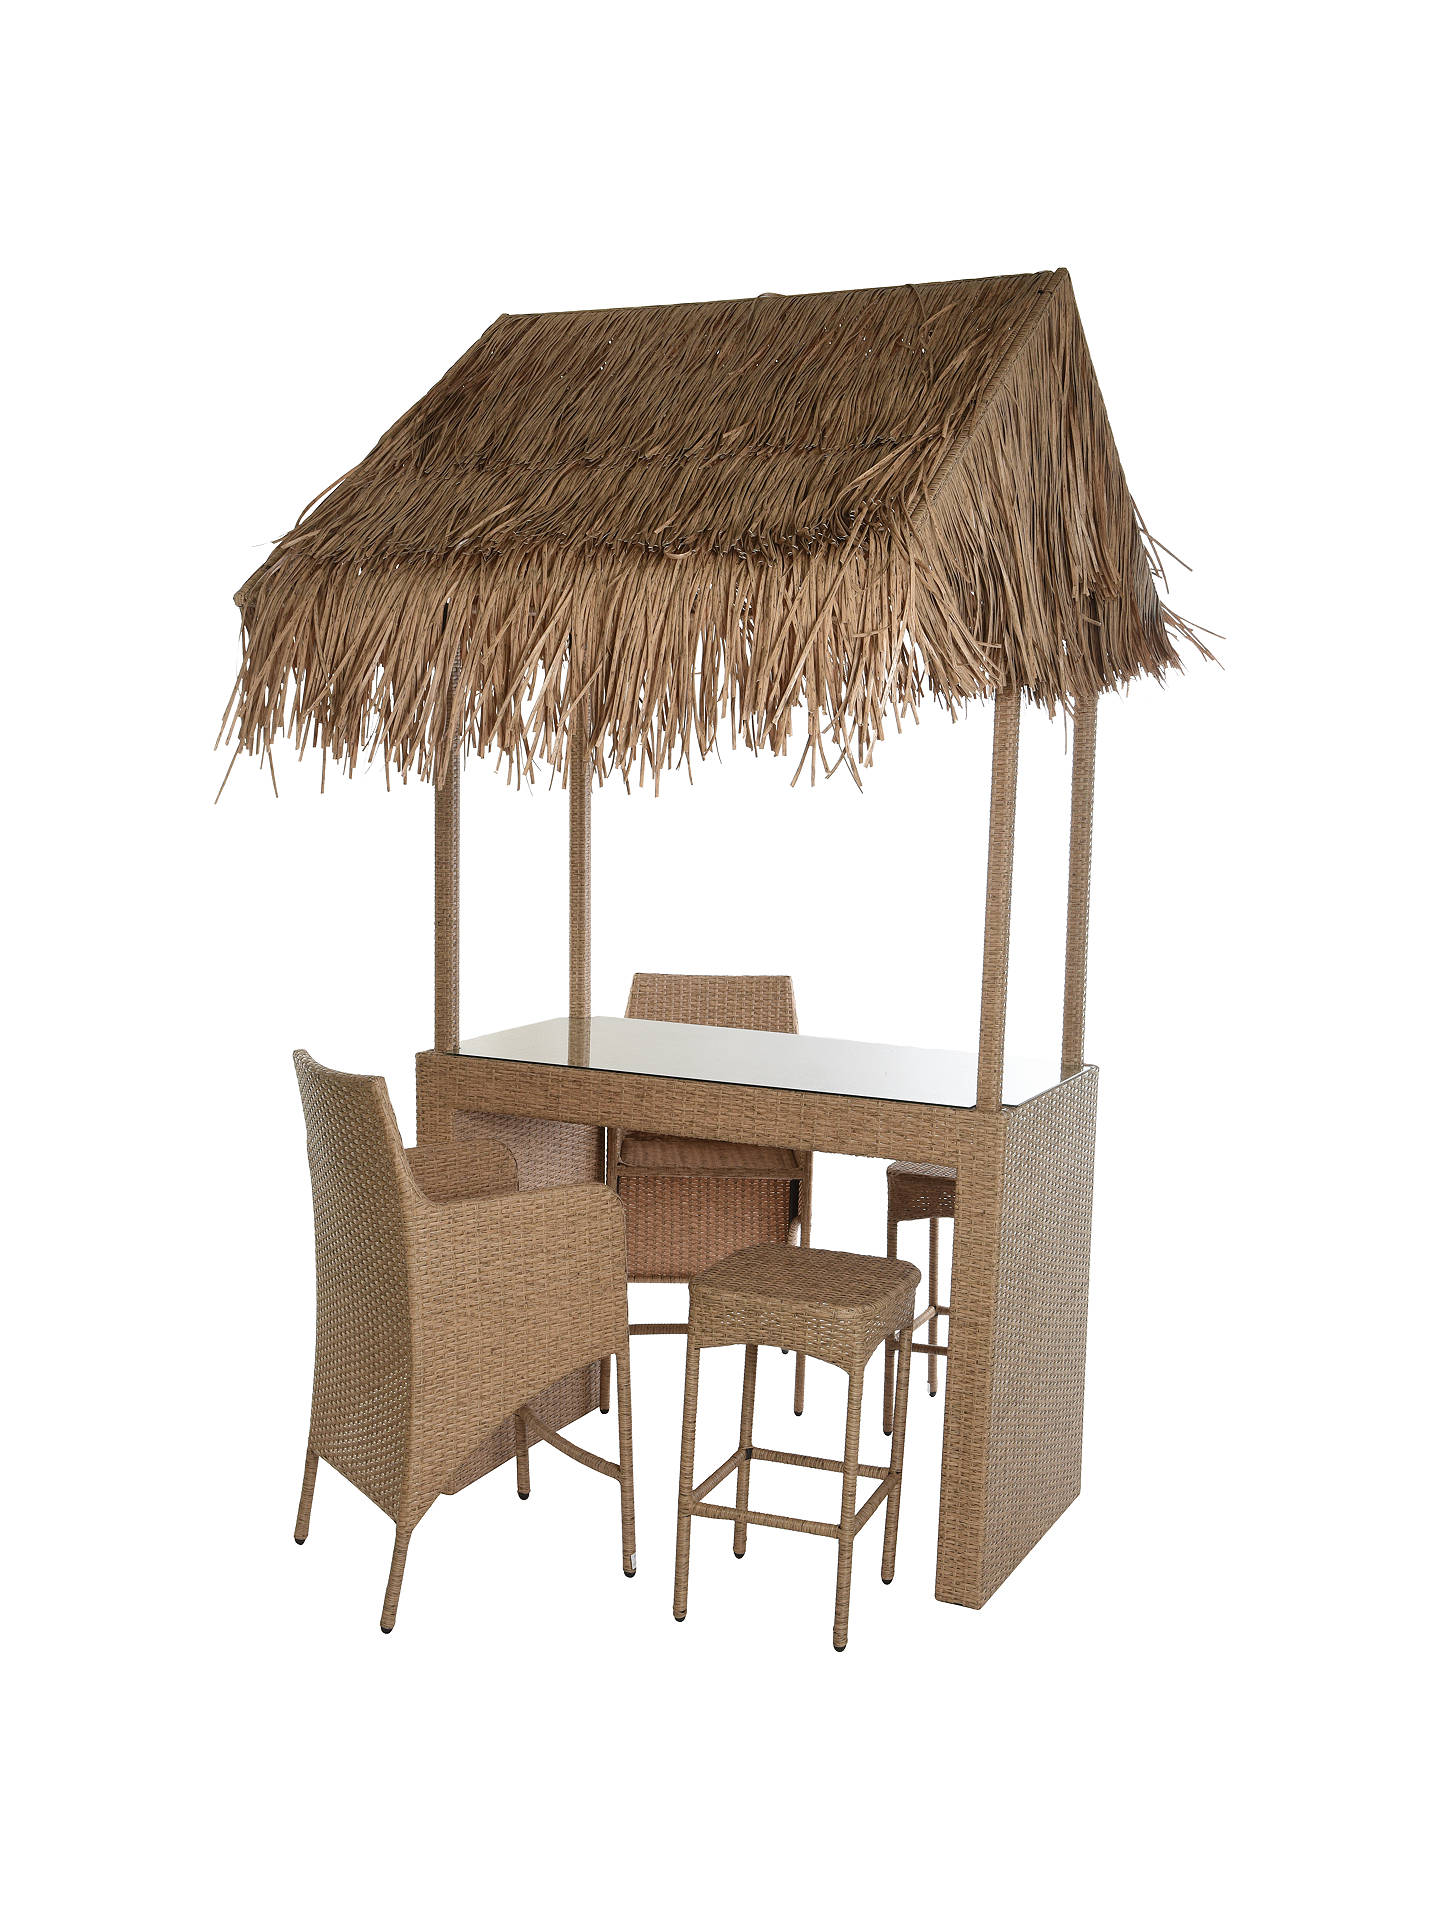 BuyWicker Rattan Tiki Bar With 2 Stools & 2 Chairs Online at johnlewis.com